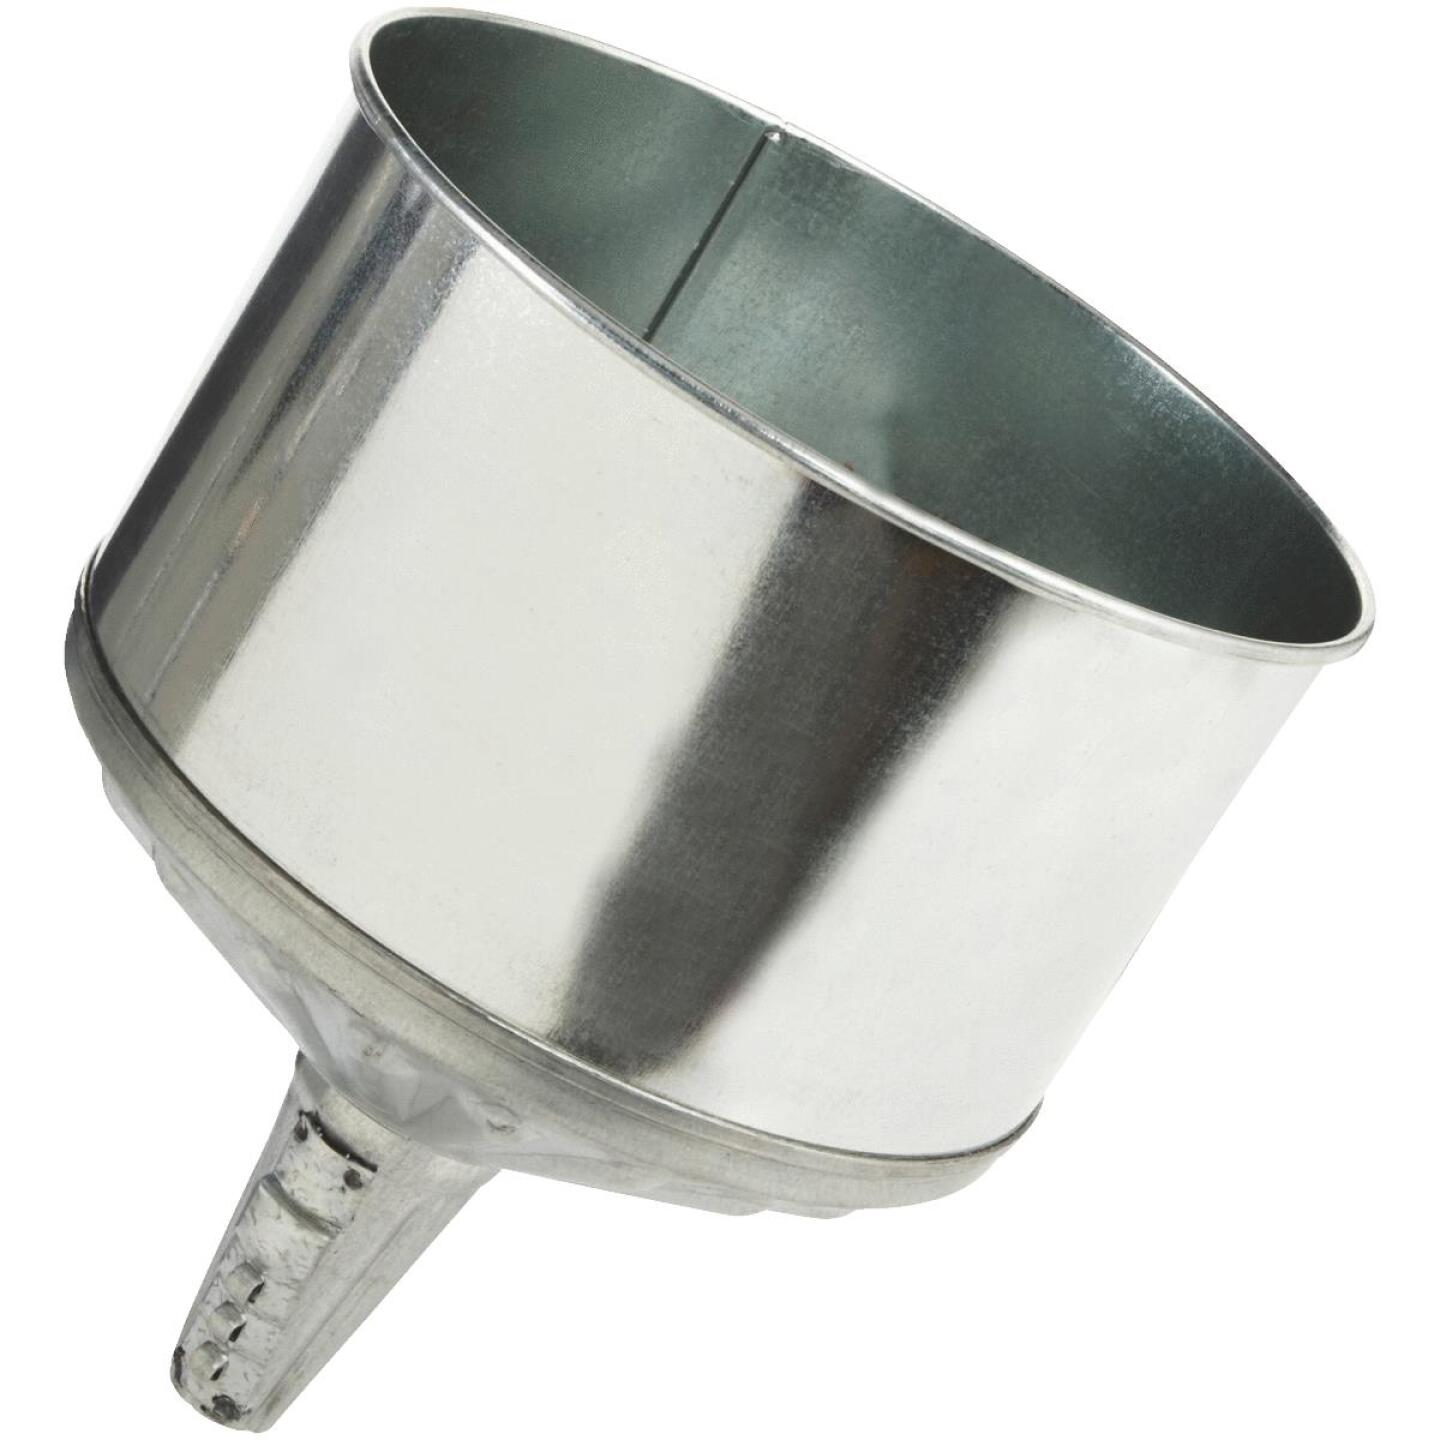 Delphos 8 Qt. Galvanized Steel Lock-On Funnel Image 1